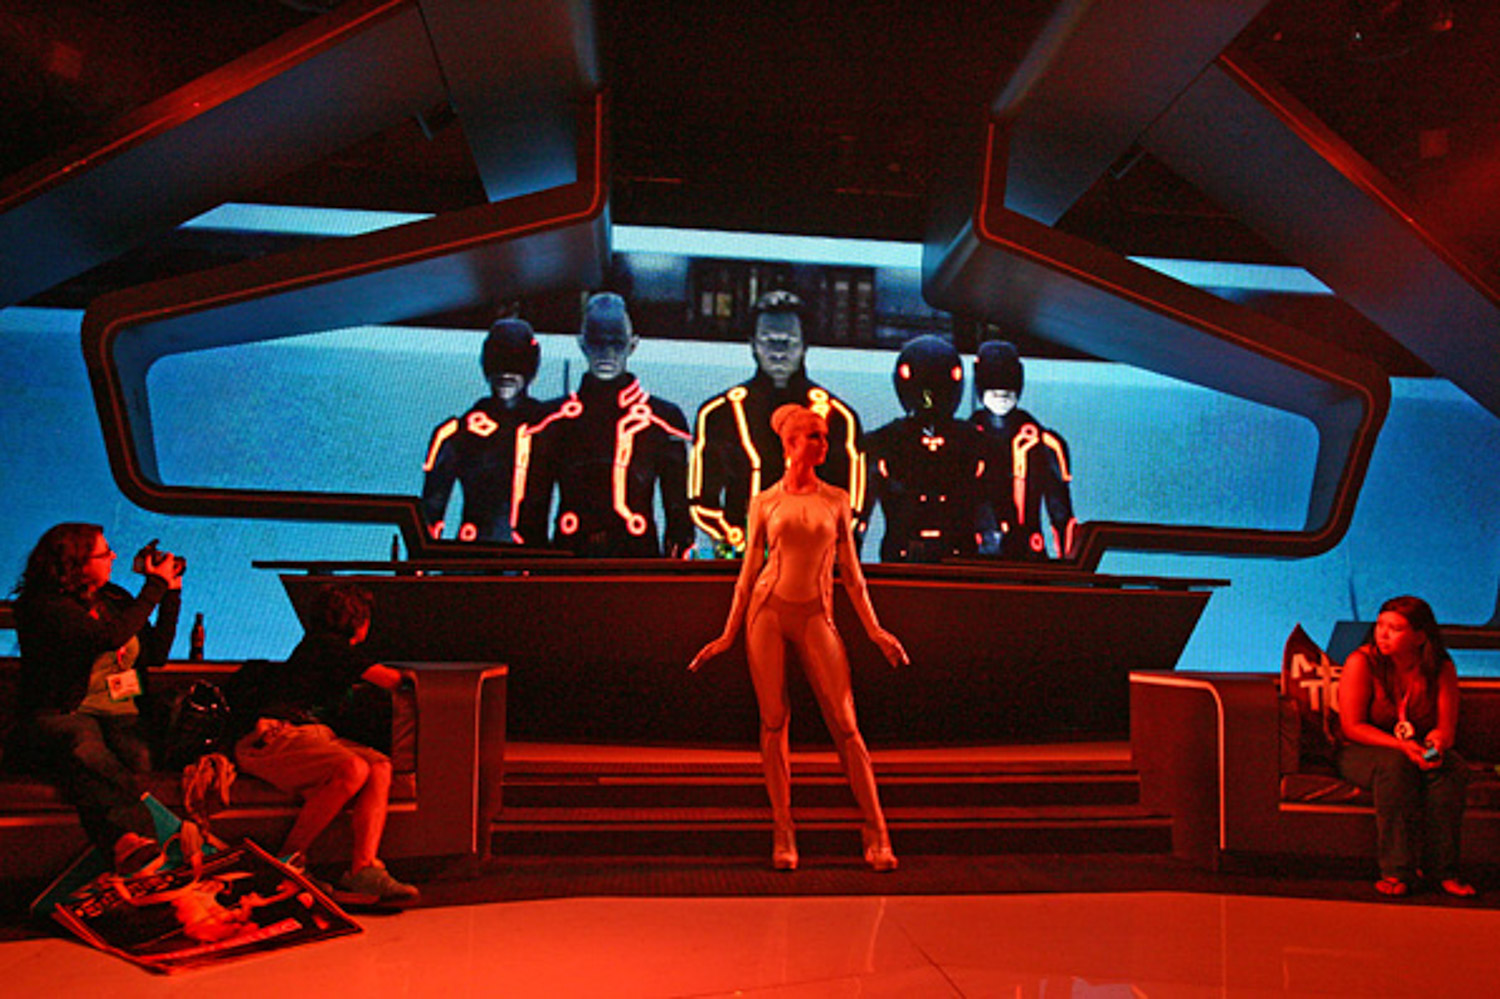 tron-comic-con-hunter-leggitt-studio-6.jpg